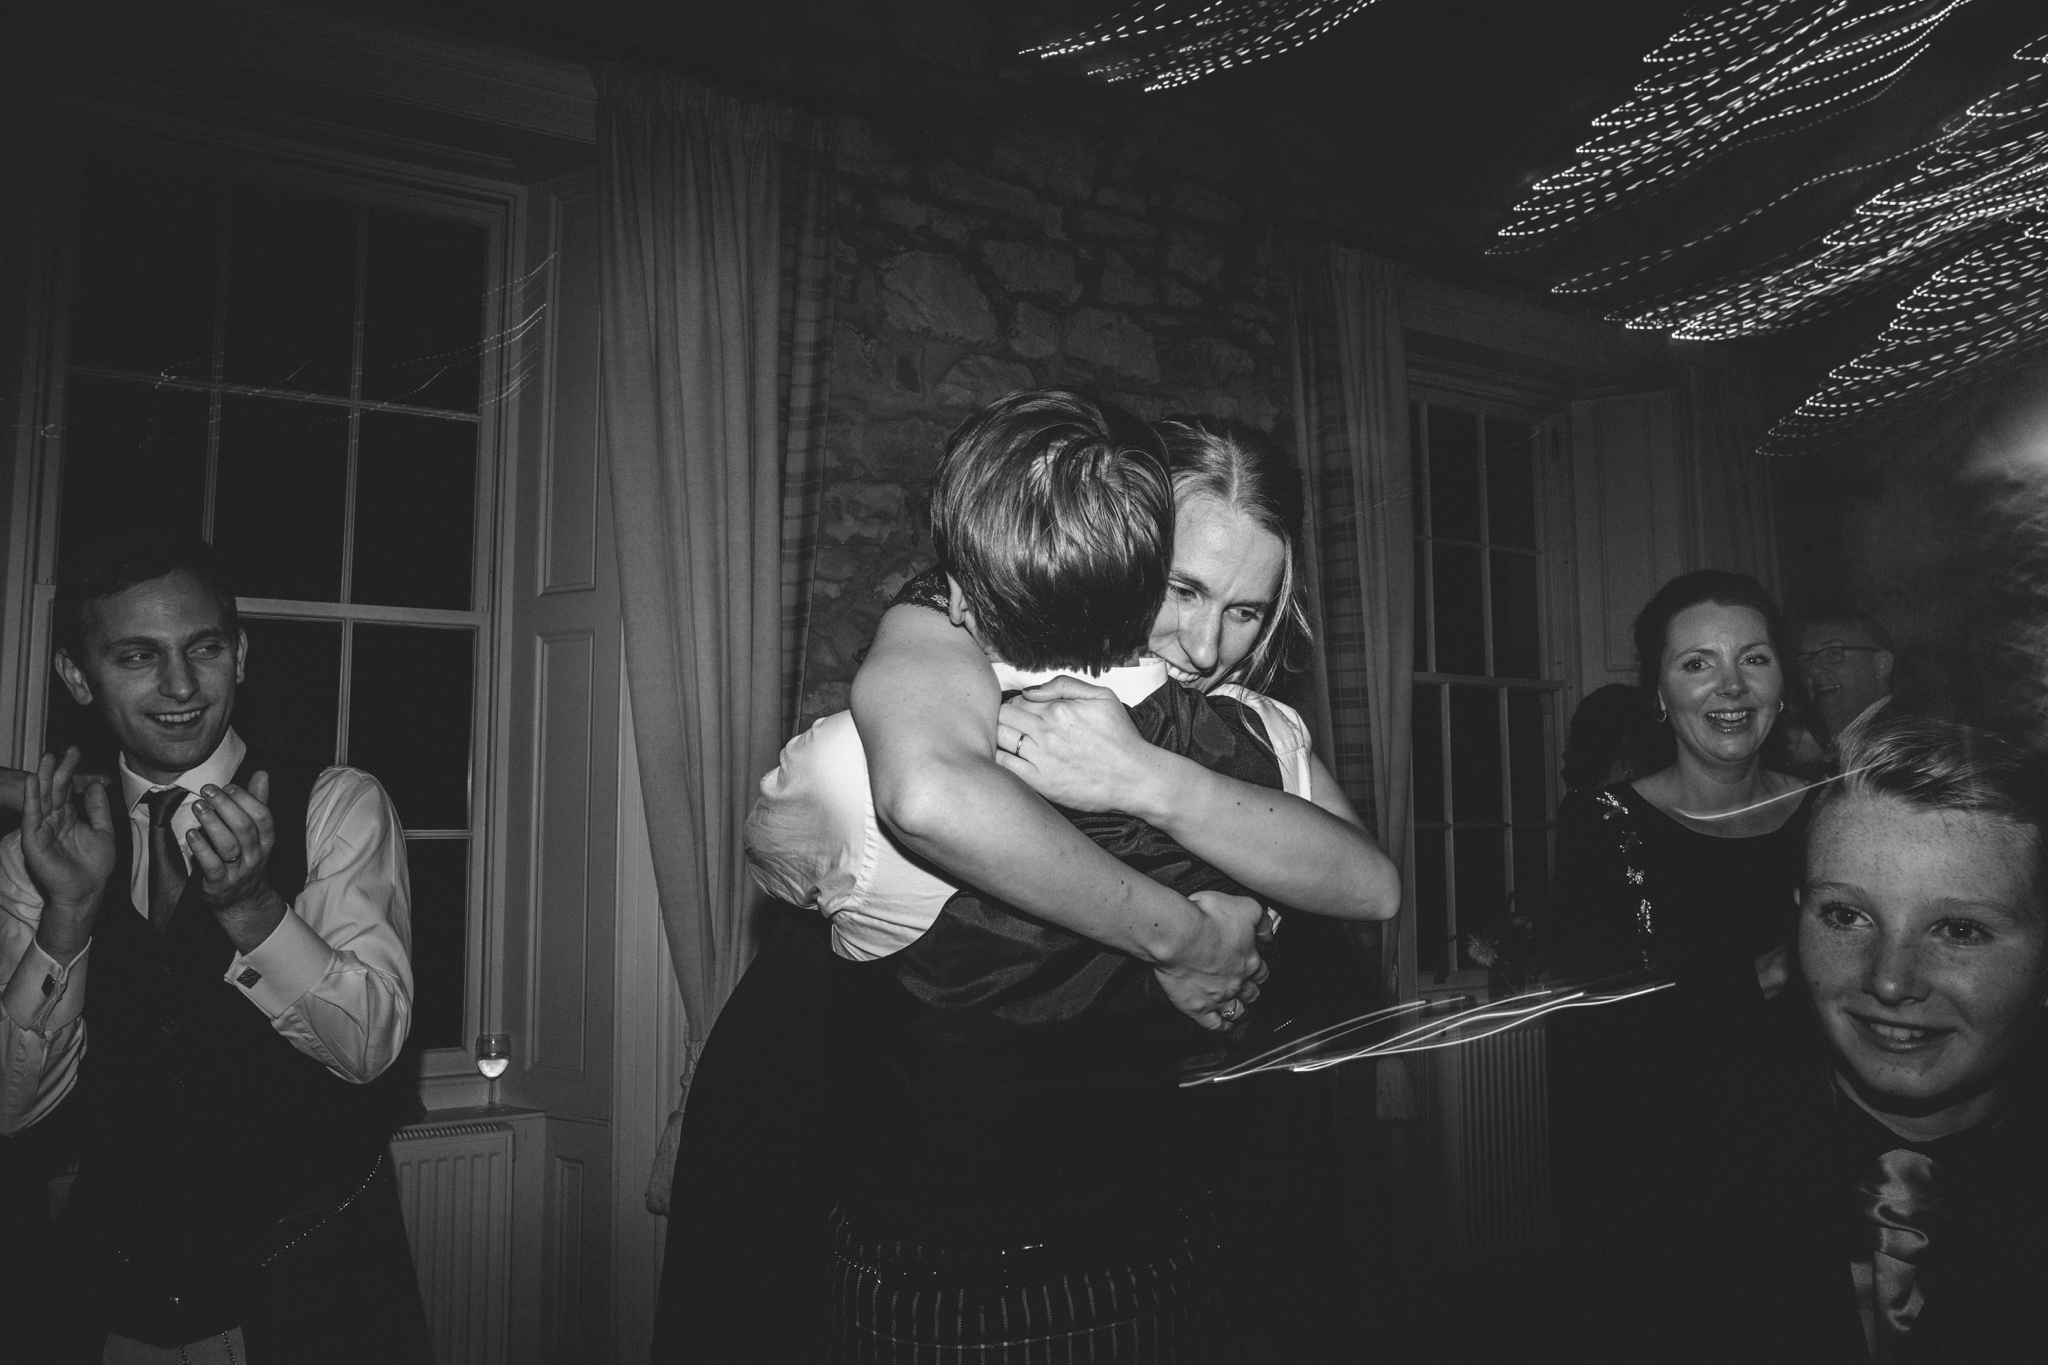 Suzanne_li_photography_kirknewton_wedding_0075.jpg